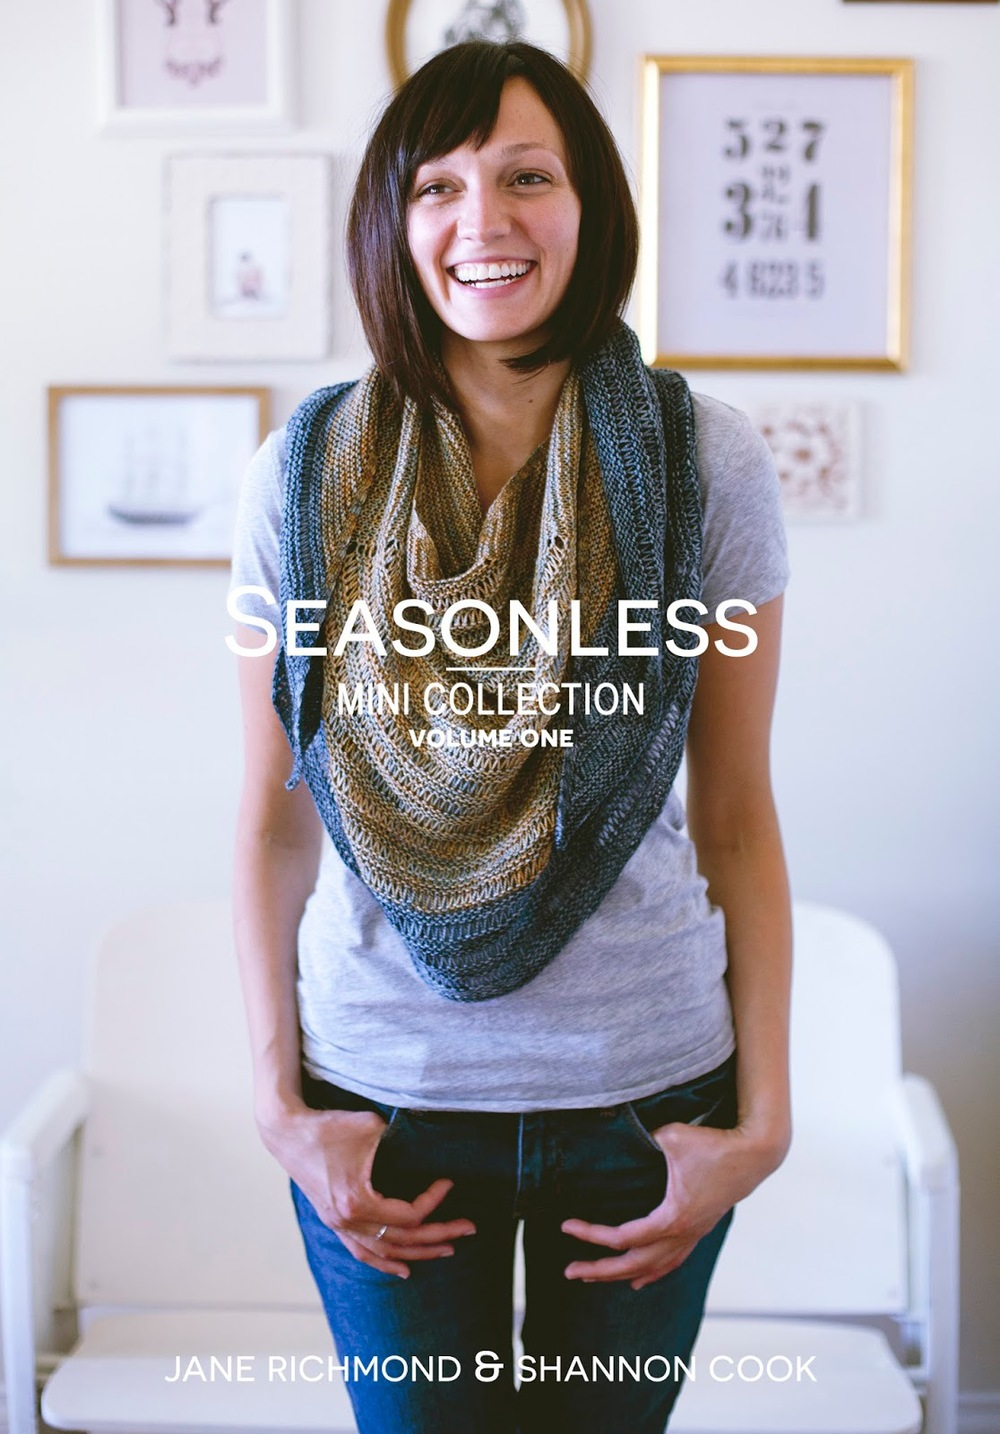 SEASONLESS | Mini Collection Volume One eBook by Shannon Cook and Jane Richmond. 3 modern, versatile and seasonless patterns from Marian Rae Publications. #seasonlessknits #knitting #book